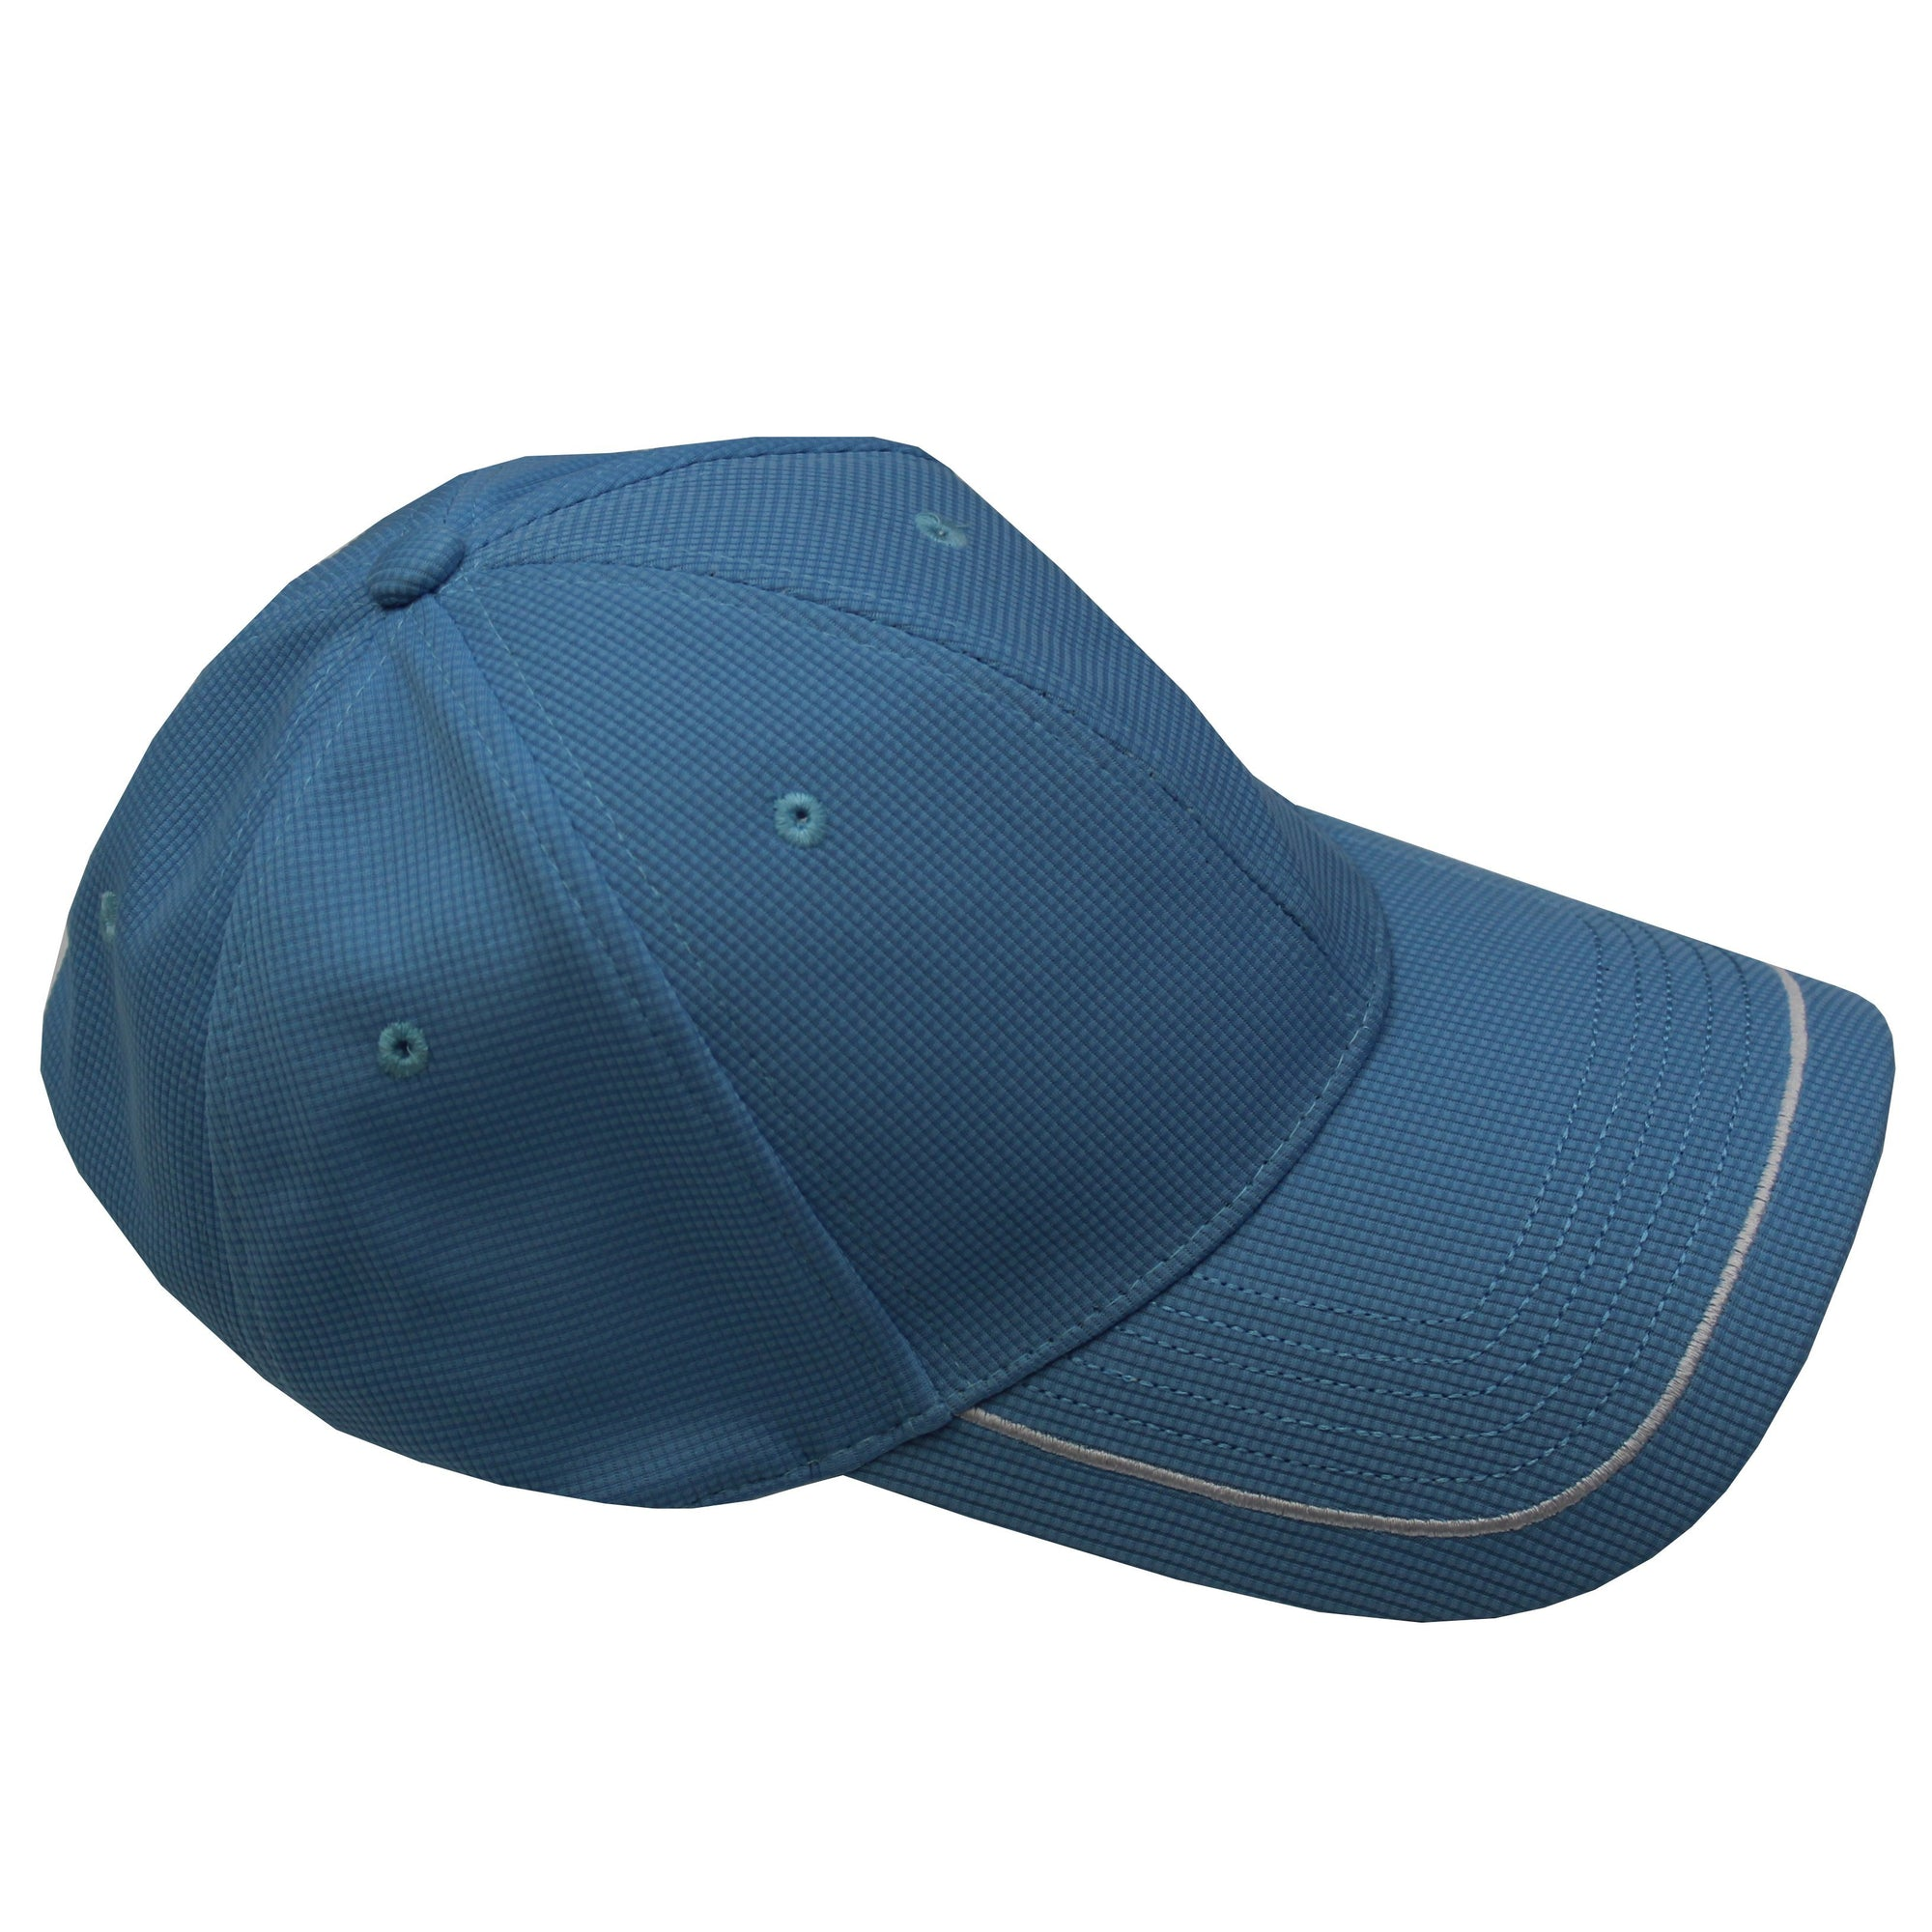 Druids Golf - Contrast Caps (Blue/White)